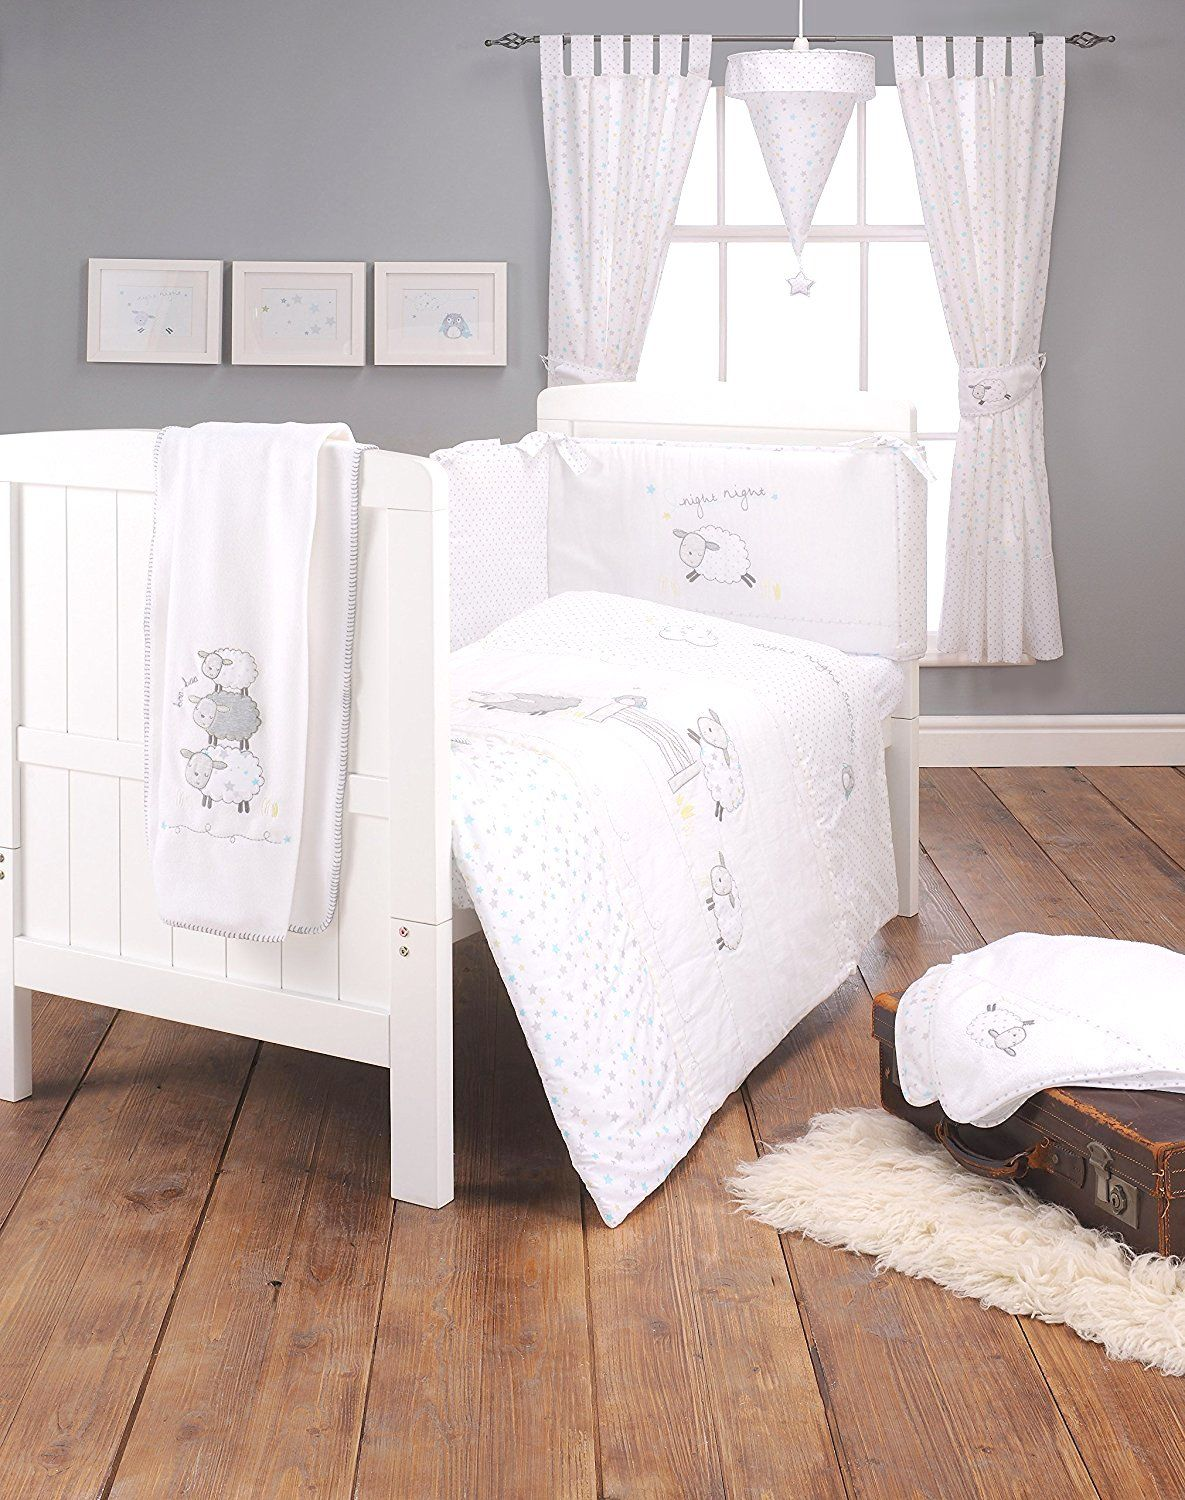 silvercloud counting sheep 3 piece bedding set nursery accessories